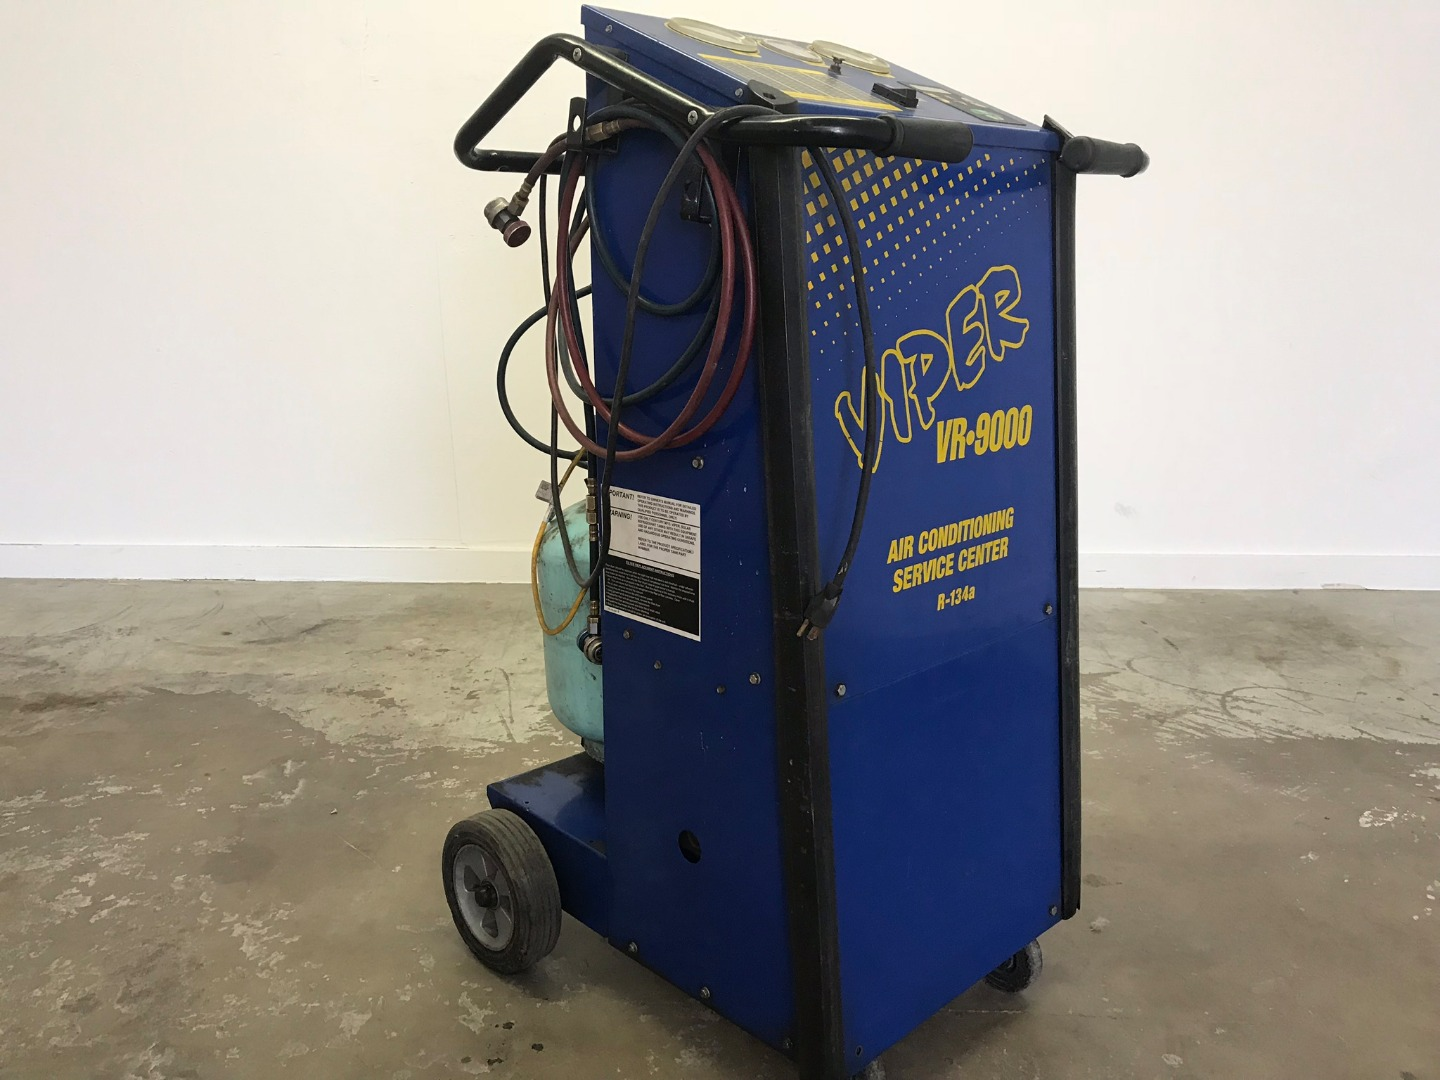 Used Century Viper Vr 9000 R 134a Air Conditioning Ac